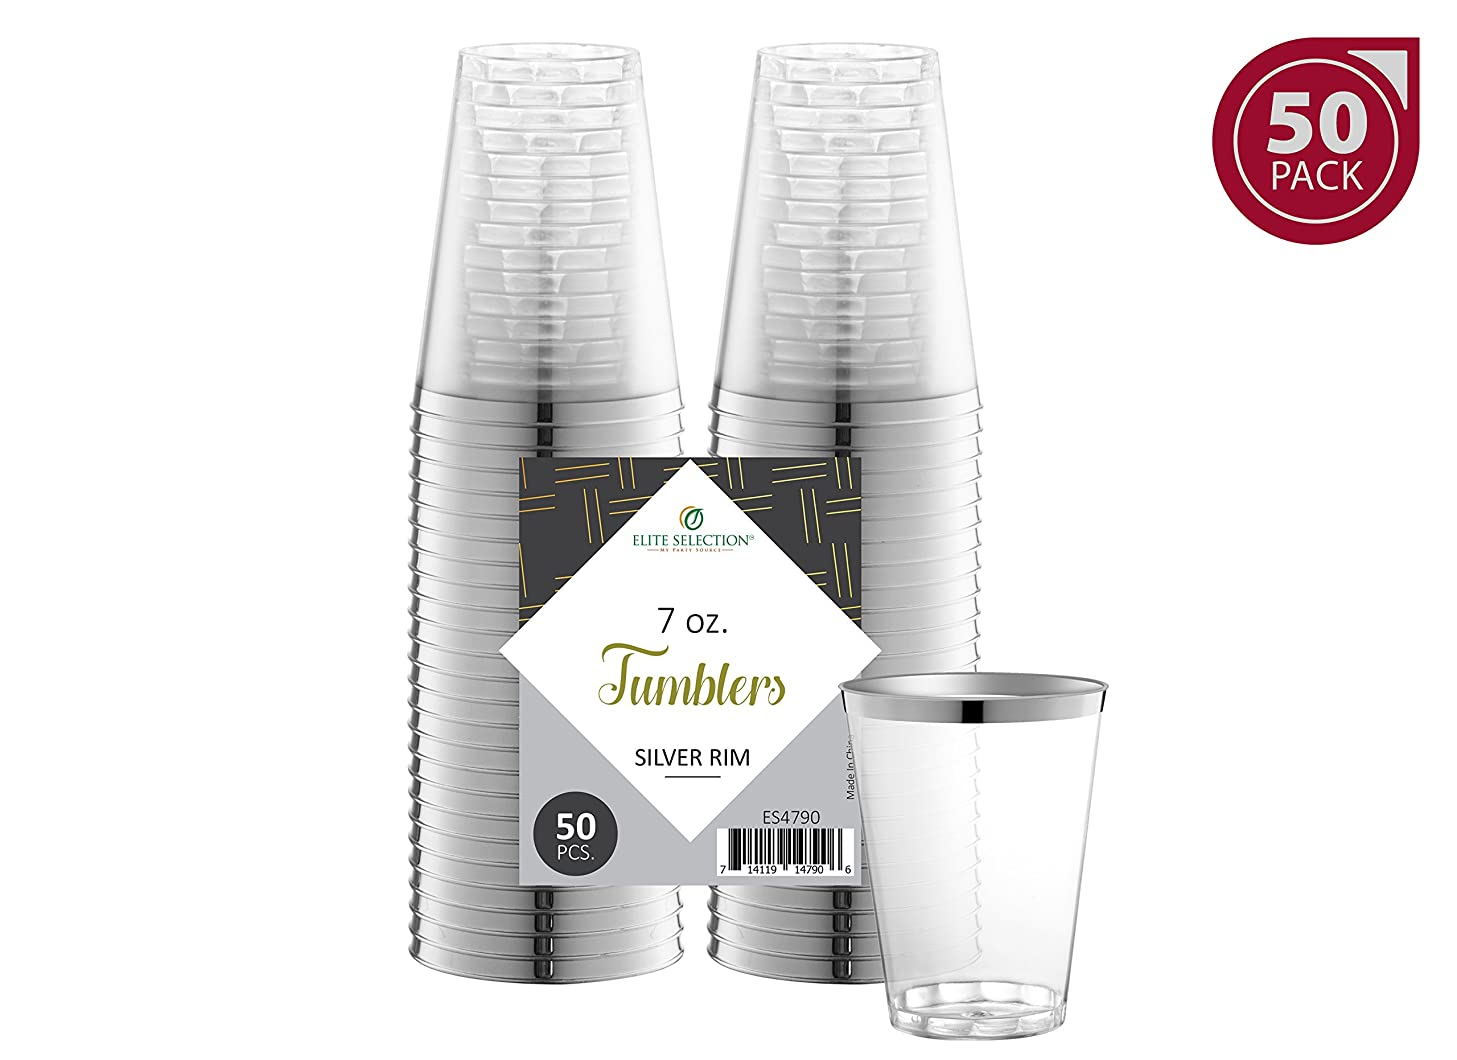 Elite Selection Silver Rimmed Shot Glasses | 7 Oz. Clear Plastic Disposable Cups with Silver Rim | Perfect Party Shot Cups for Shots, Tasting, Sauce, Dips | Pack of 50